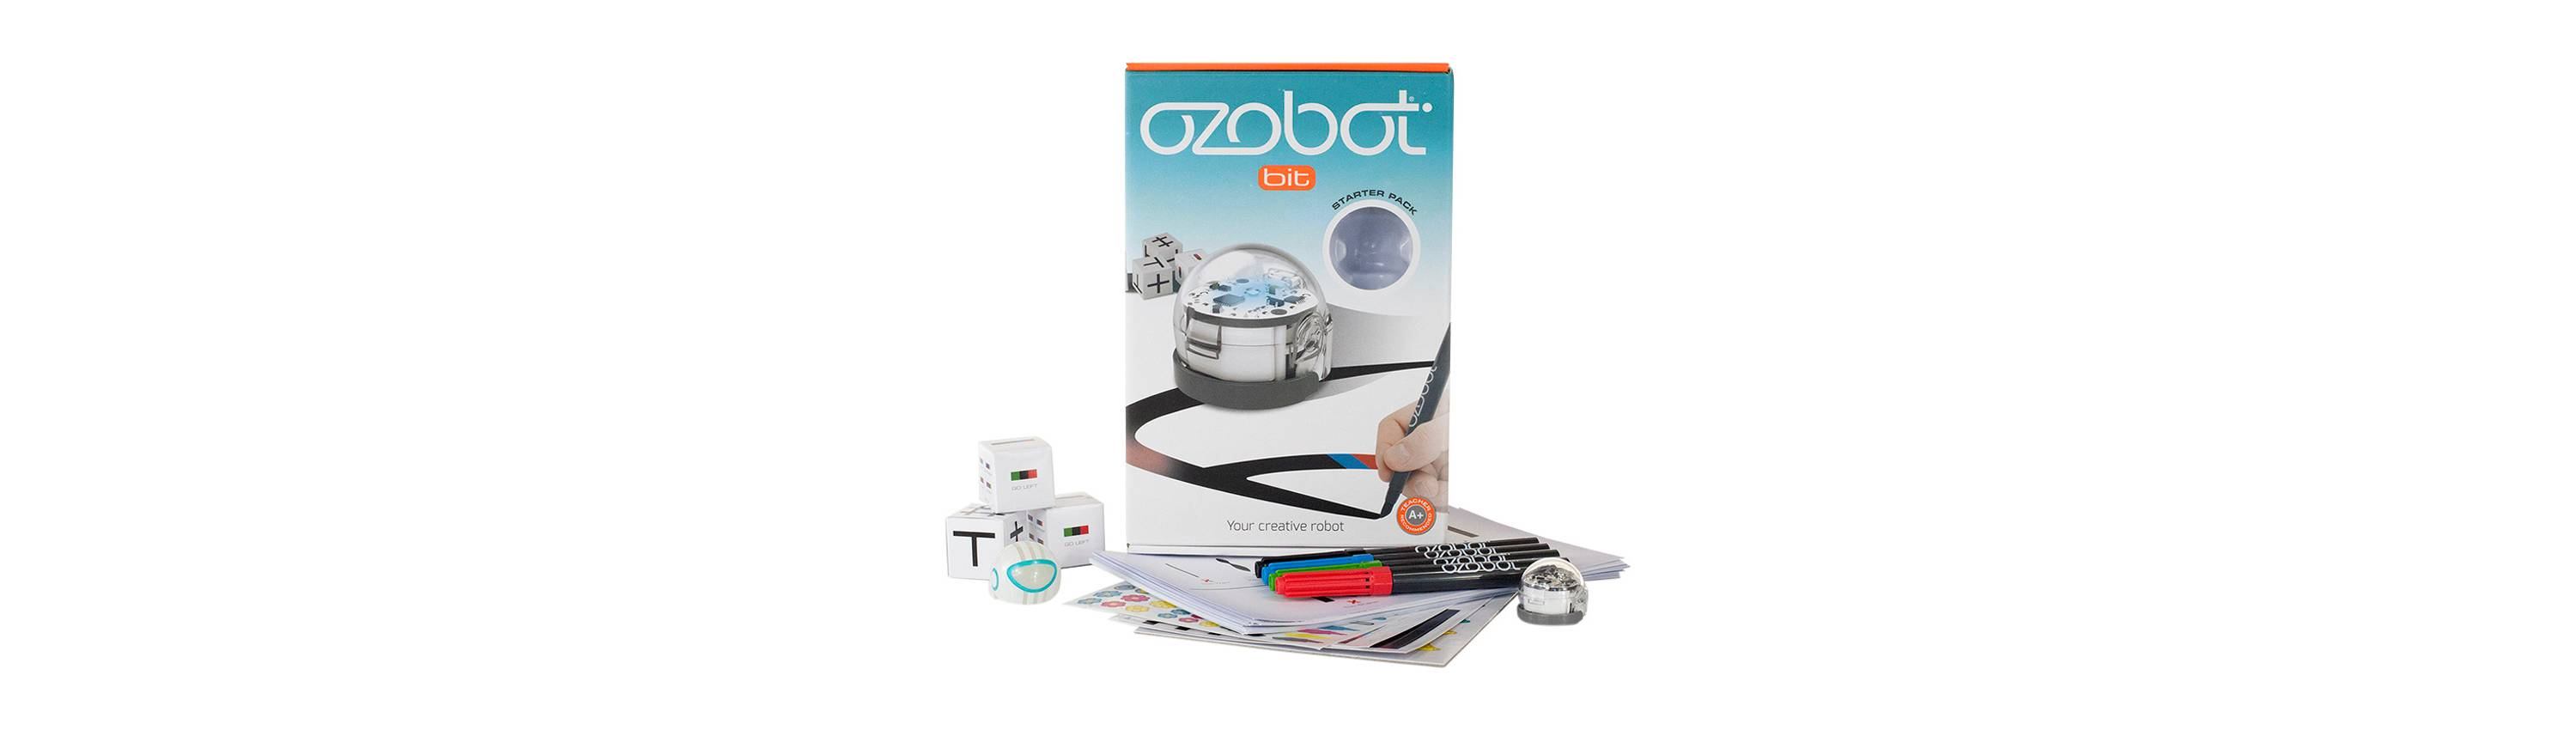 Ozobot Cool Robot Toys for Kids that Teach Coding ⋆ Metro Mom Club